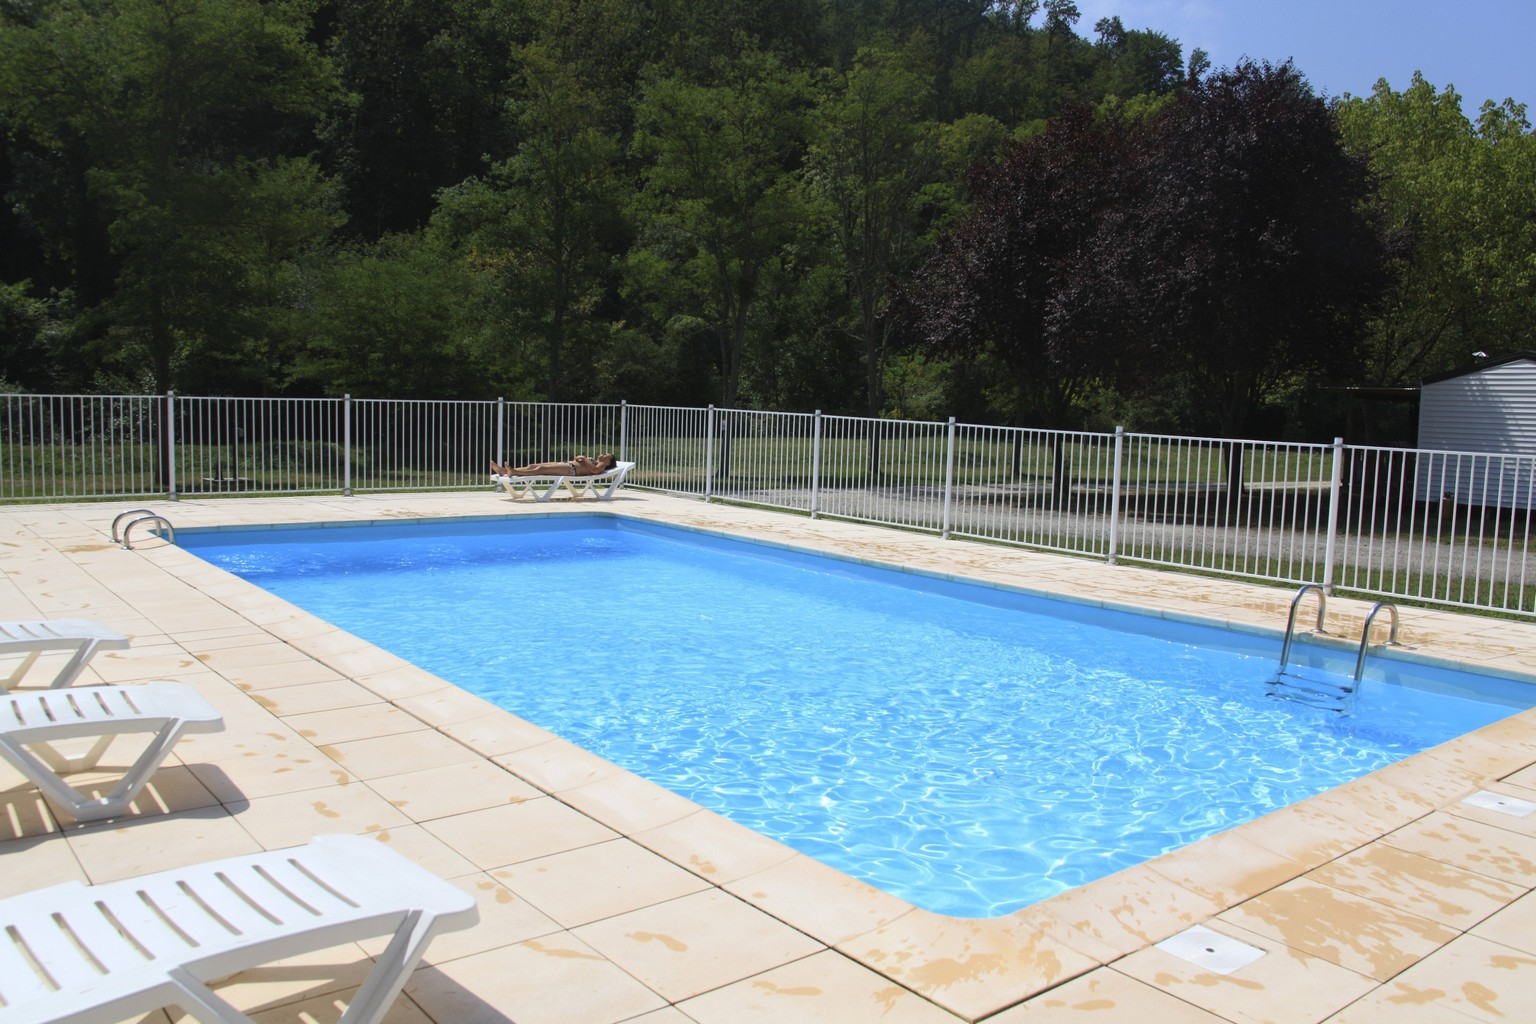 Barri res de protection de piscine faire le bon choix for Protection pour piscine